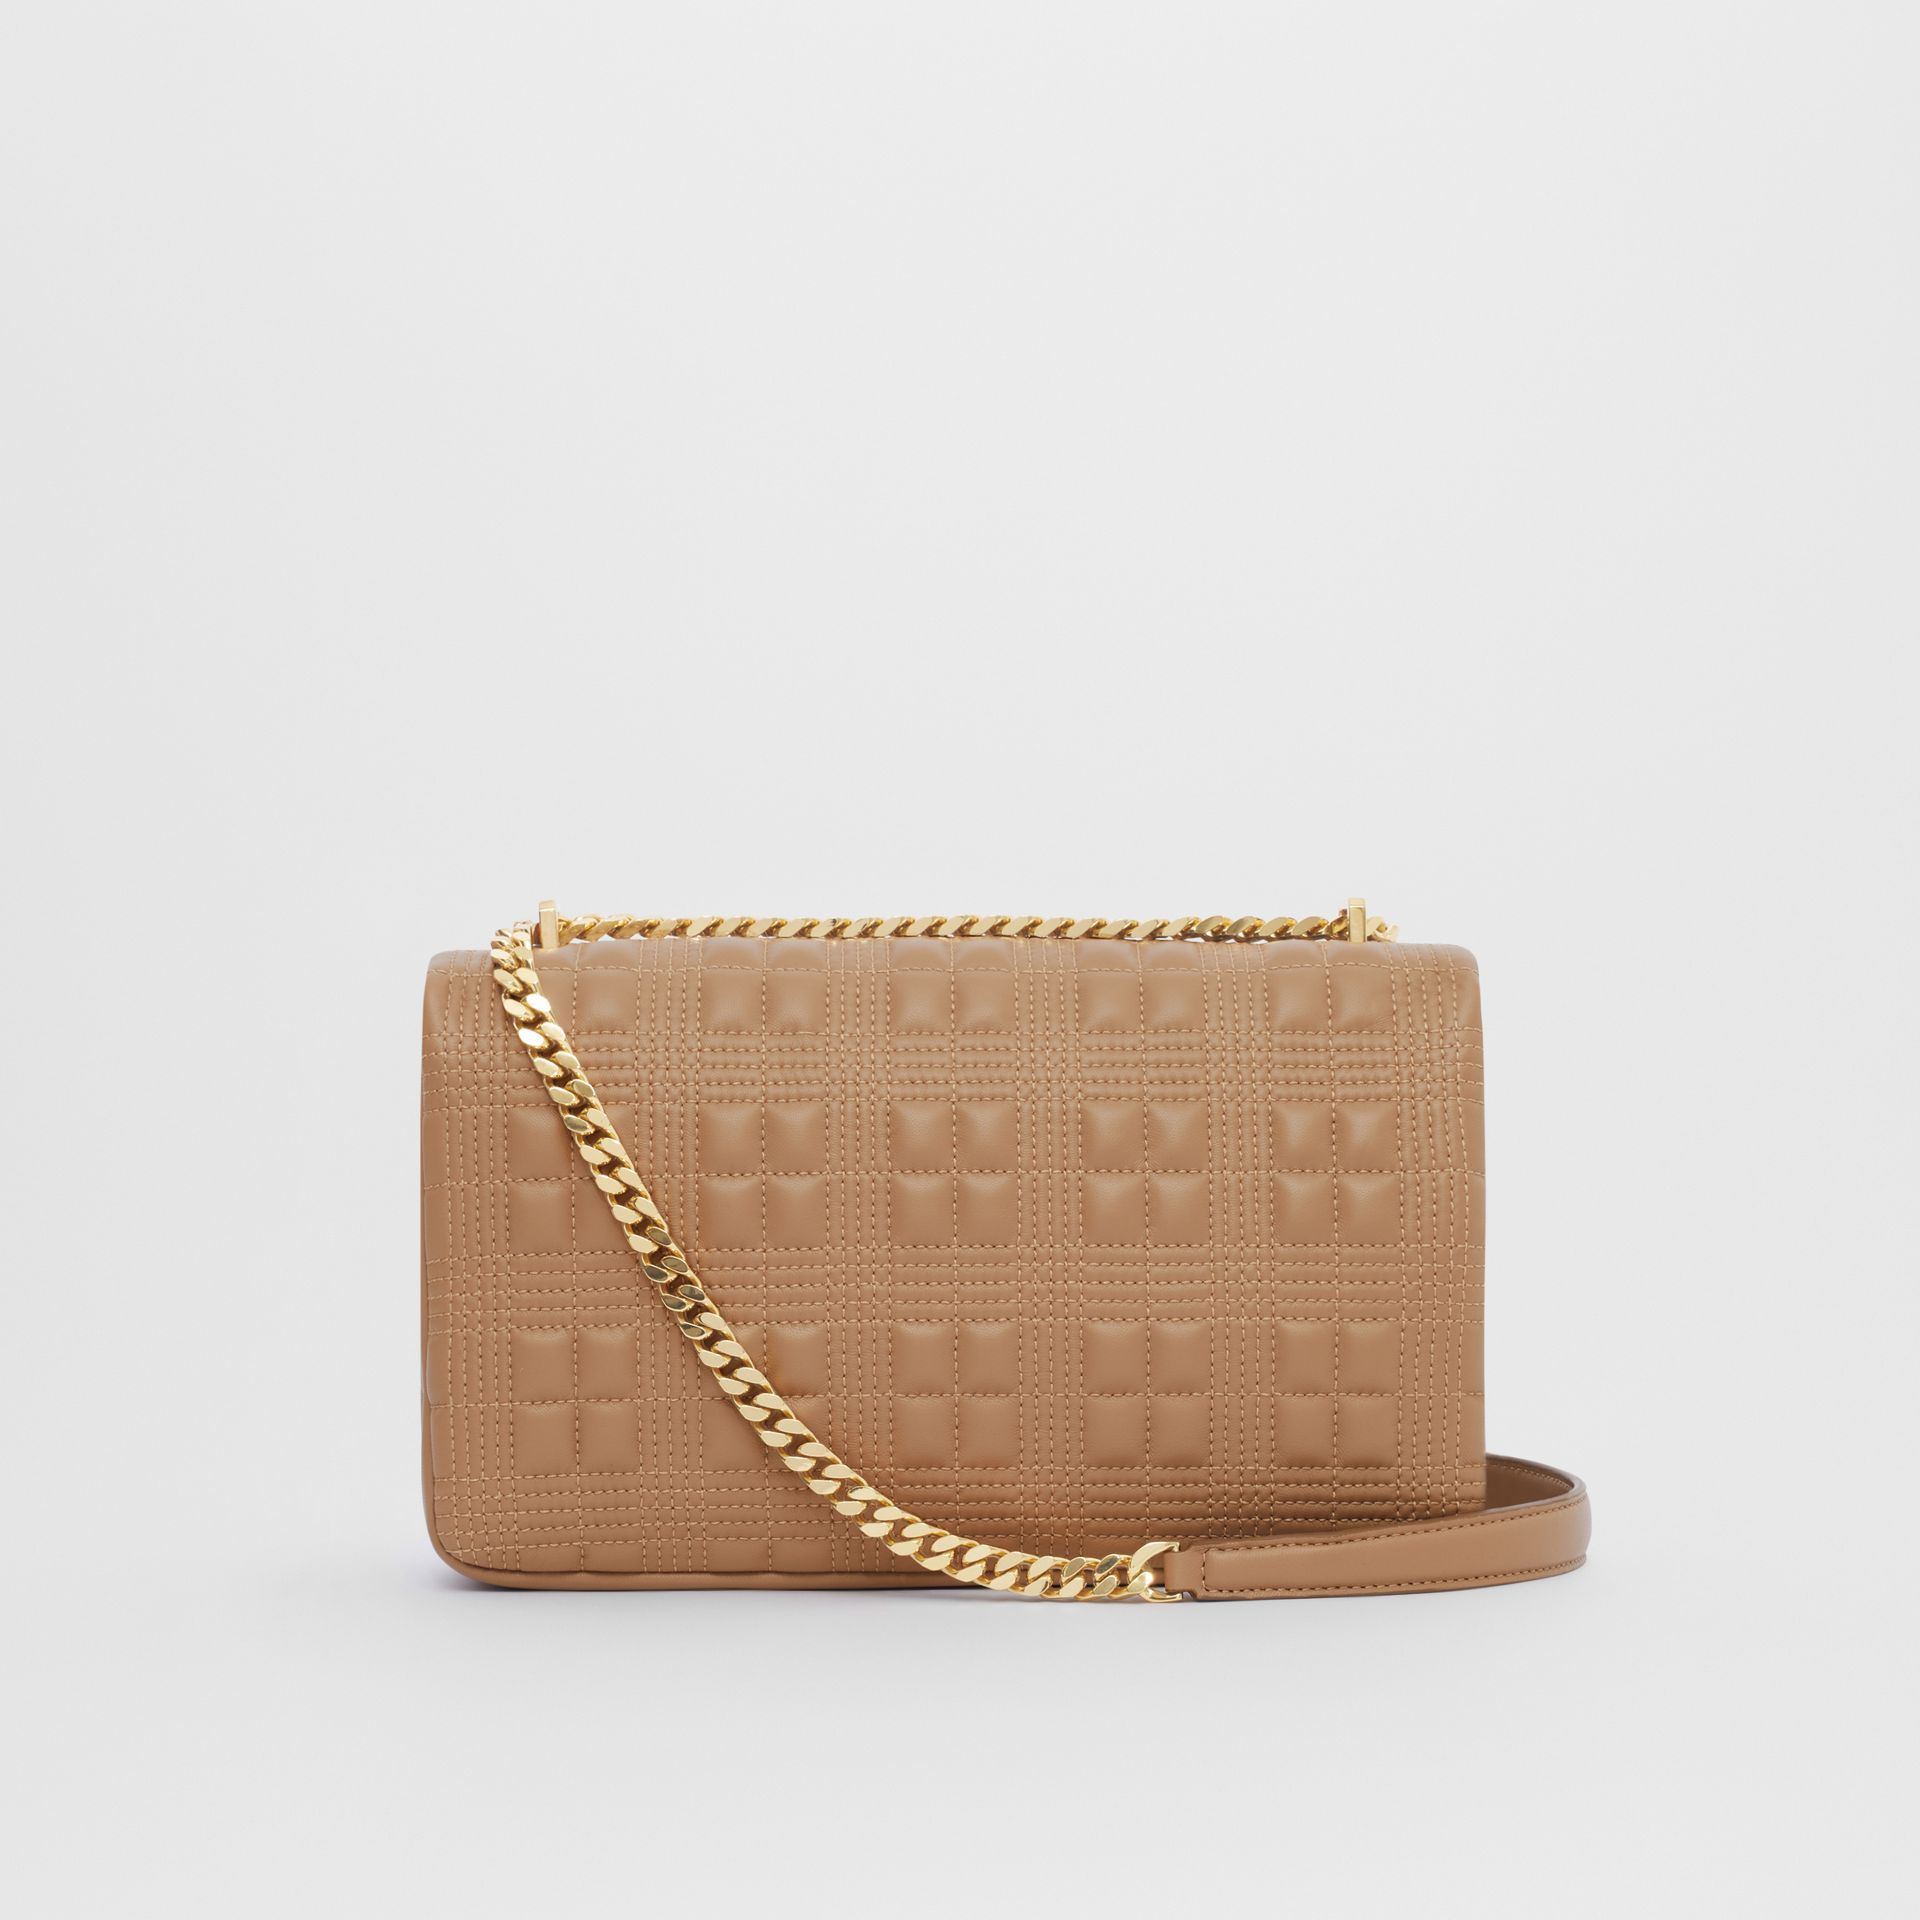 Medium Quilted Check Lambskin Lola Bag in Camel - Women | Burberry - gallery image 7